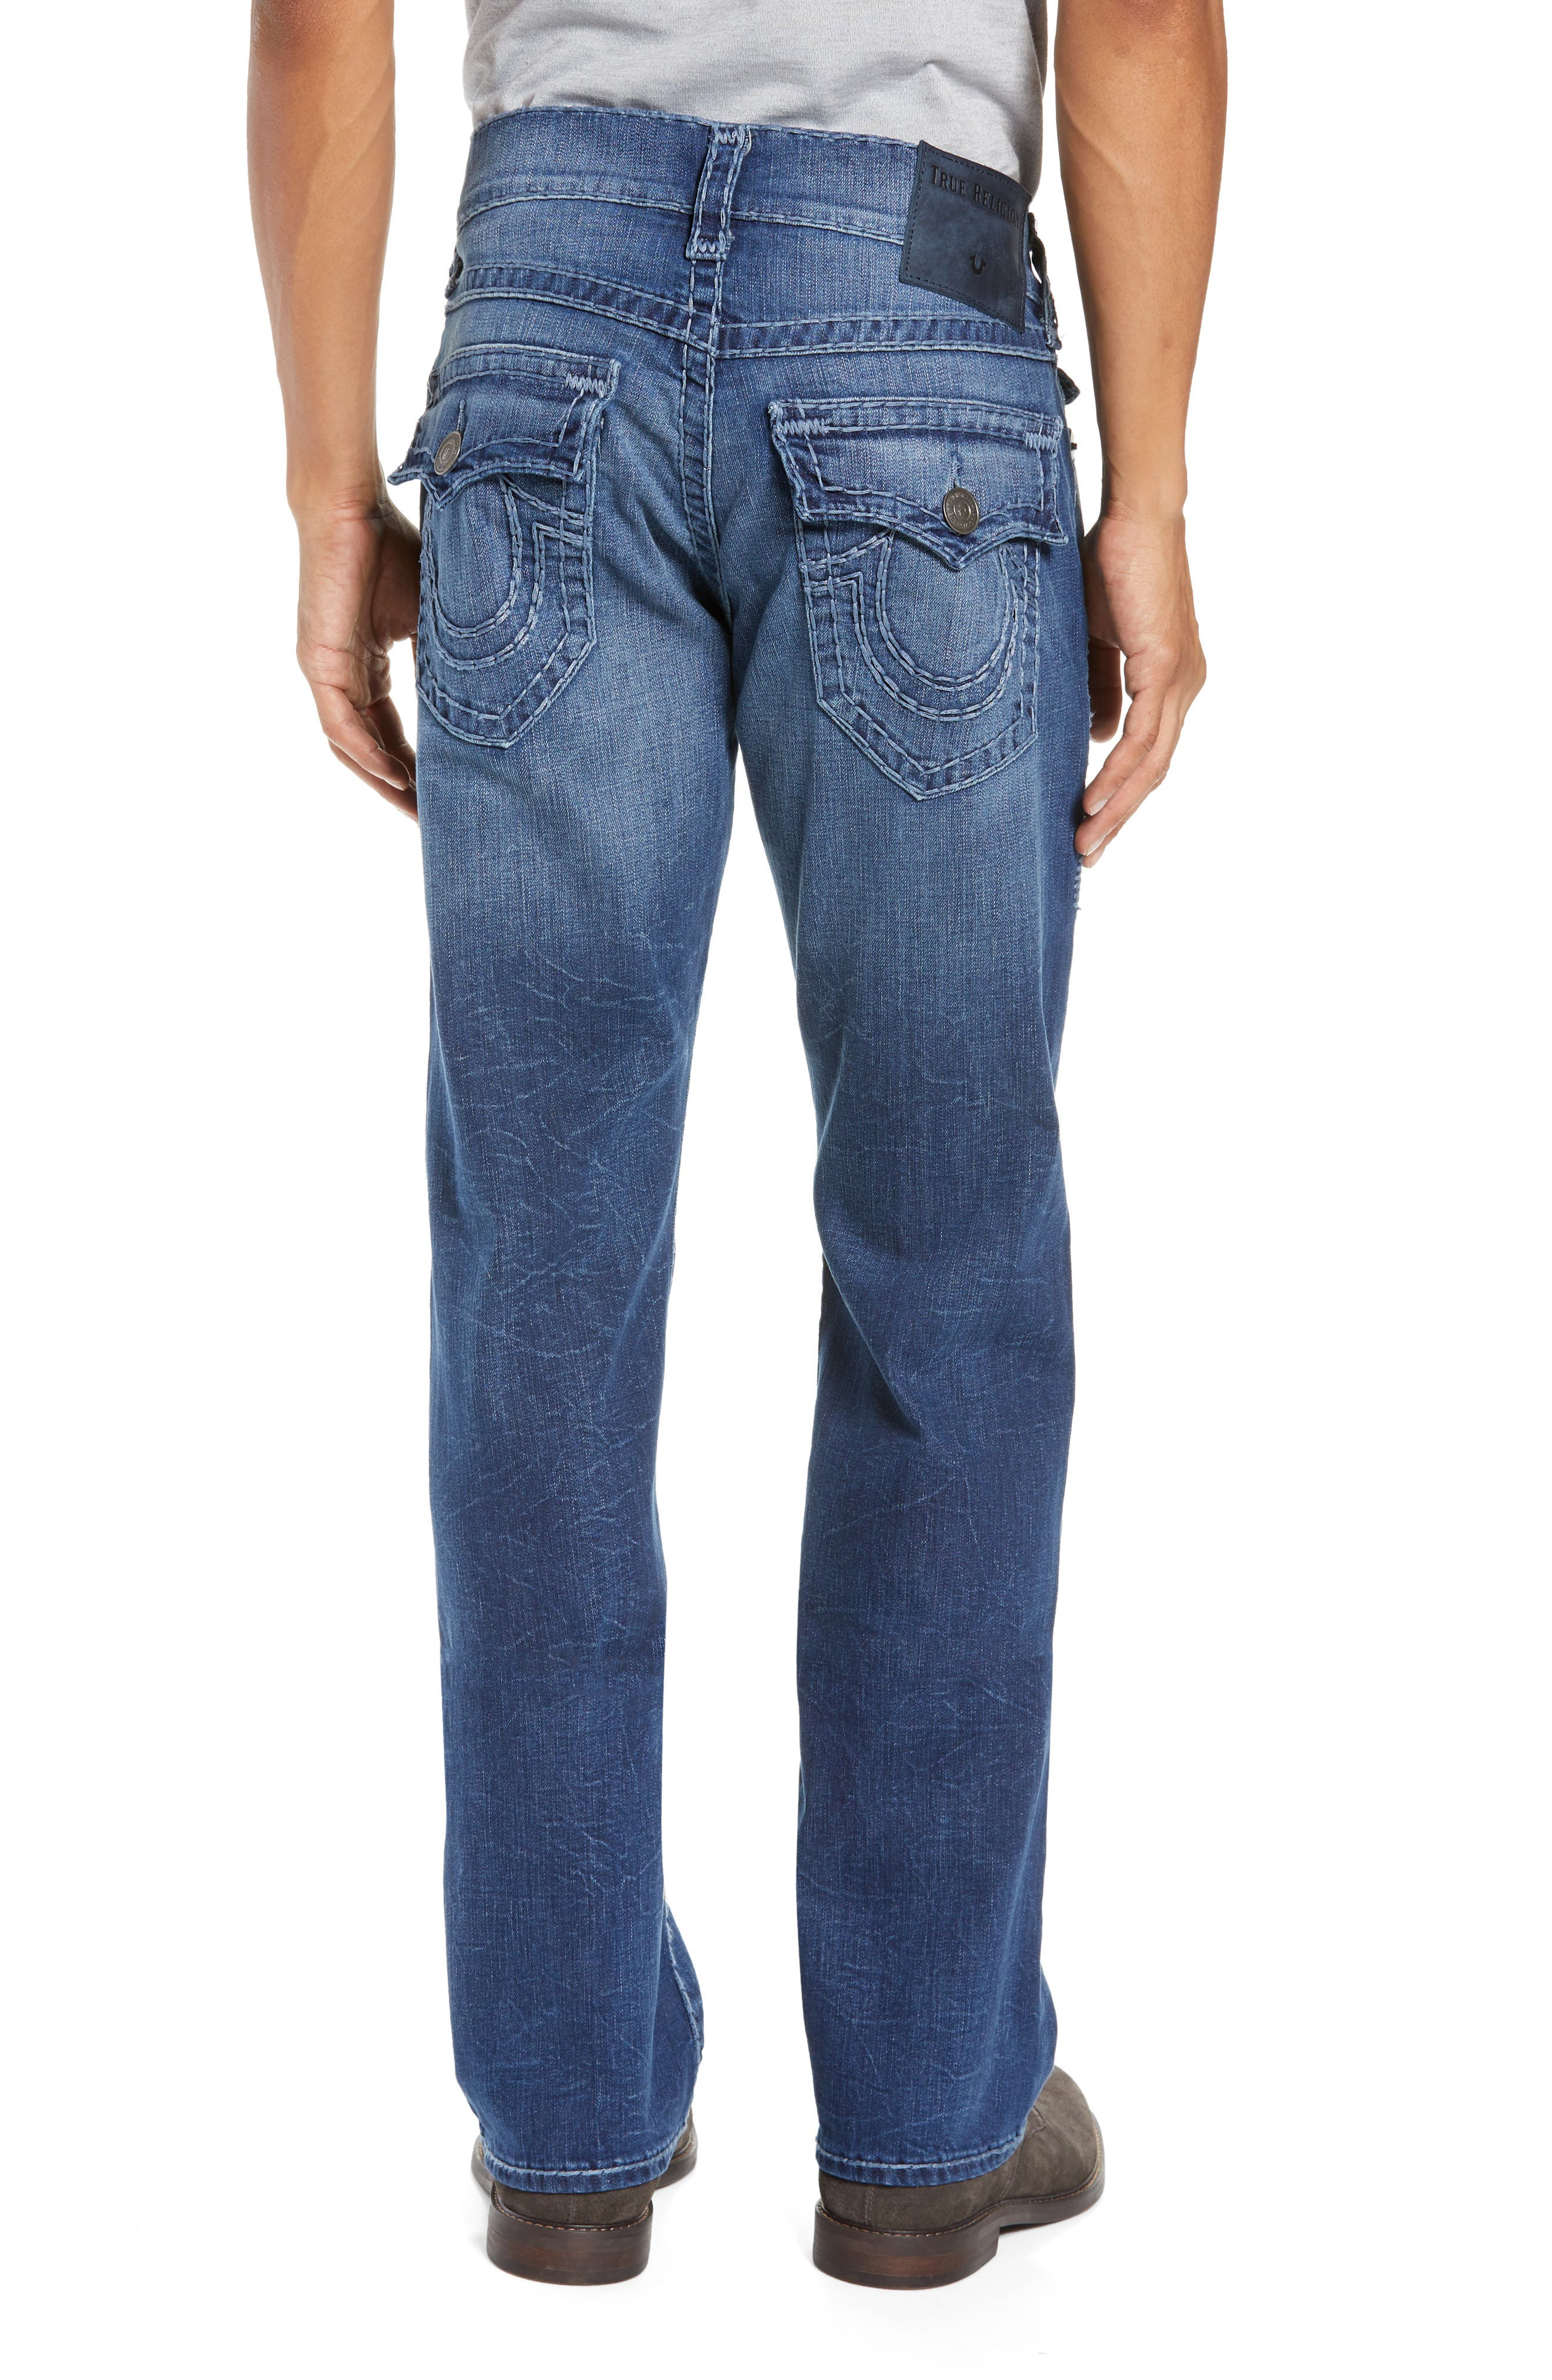 Ricky Relaxed Fit Jeans,                             Alternate thumbnail 2, color,                             HIGH FREQUENCY